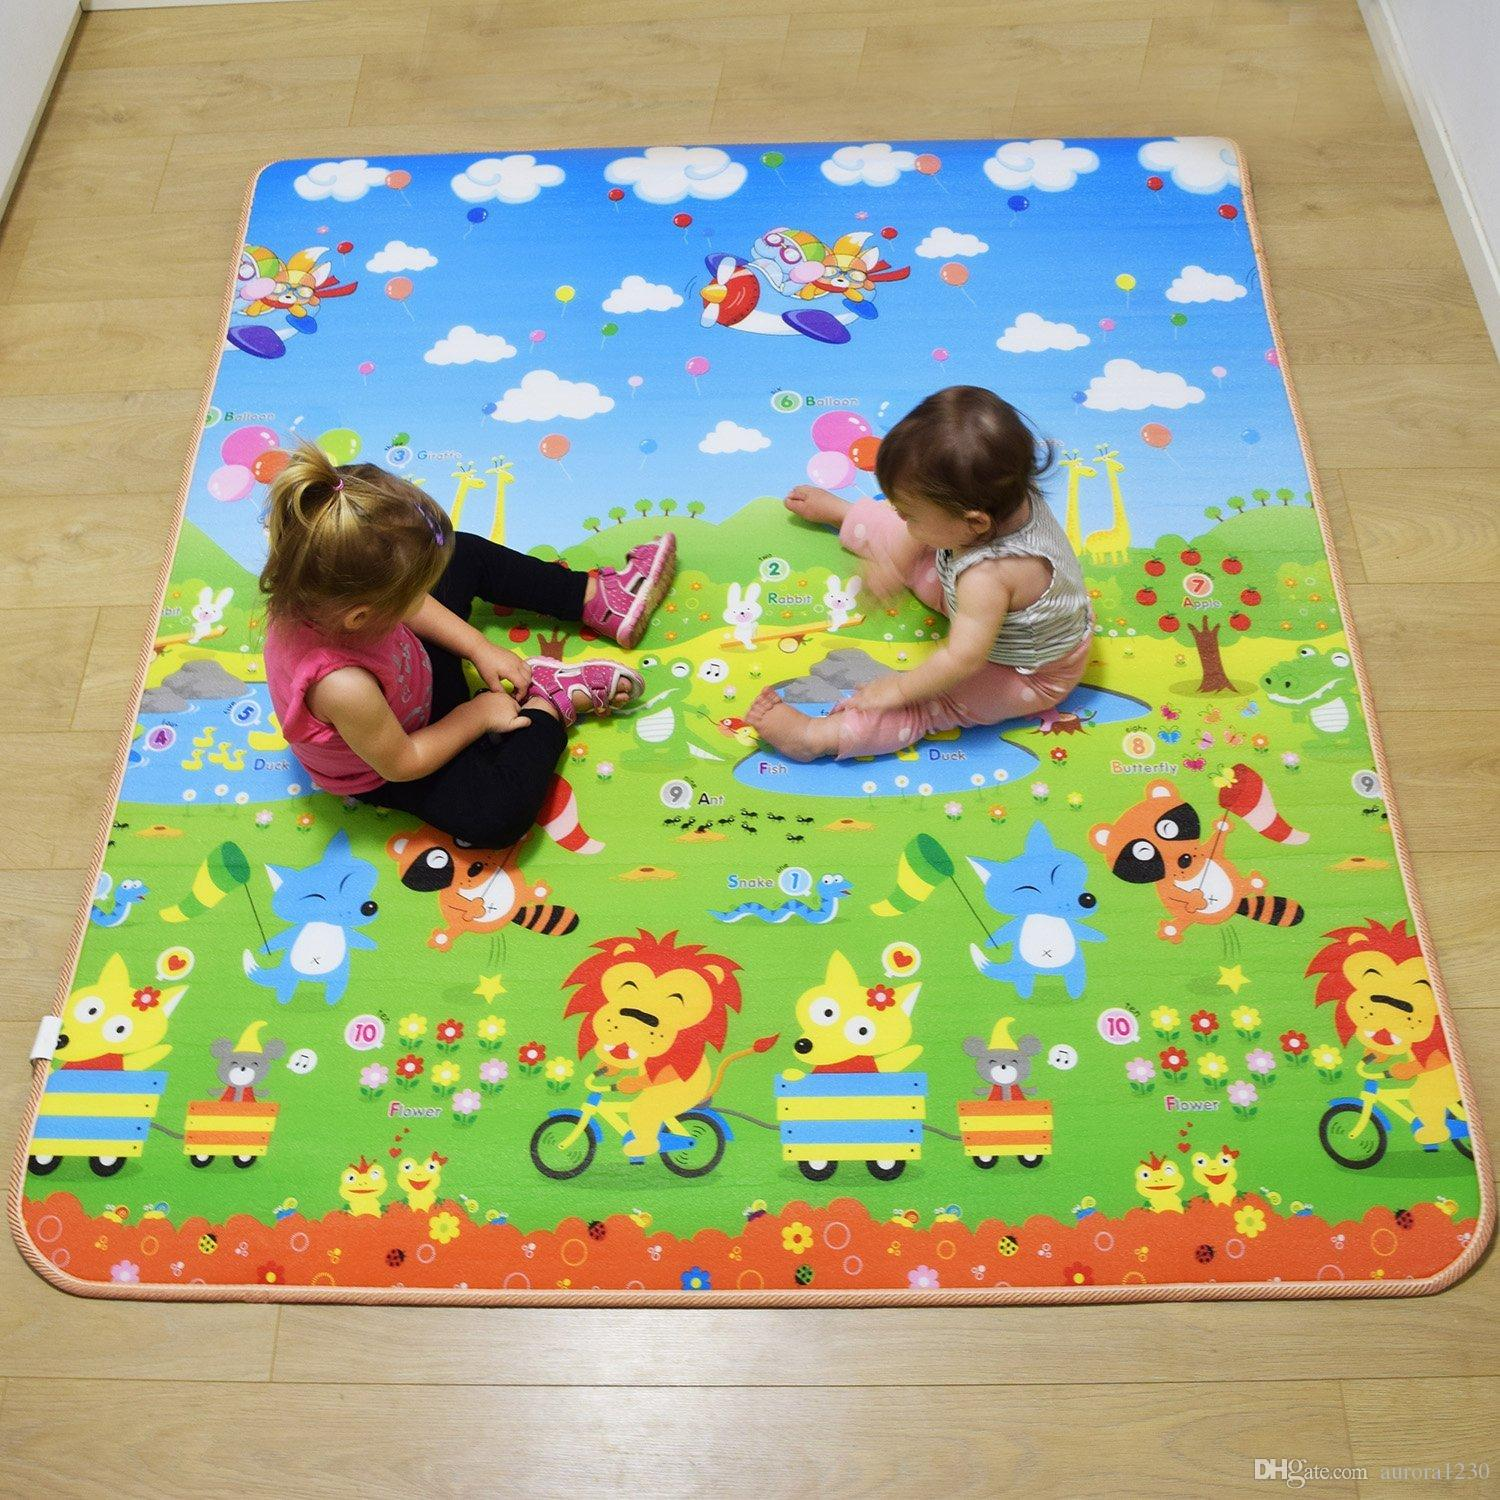 blanket gym toys folding educational store open play baby colour floors product floor carpet size toy mats music around mat infant details